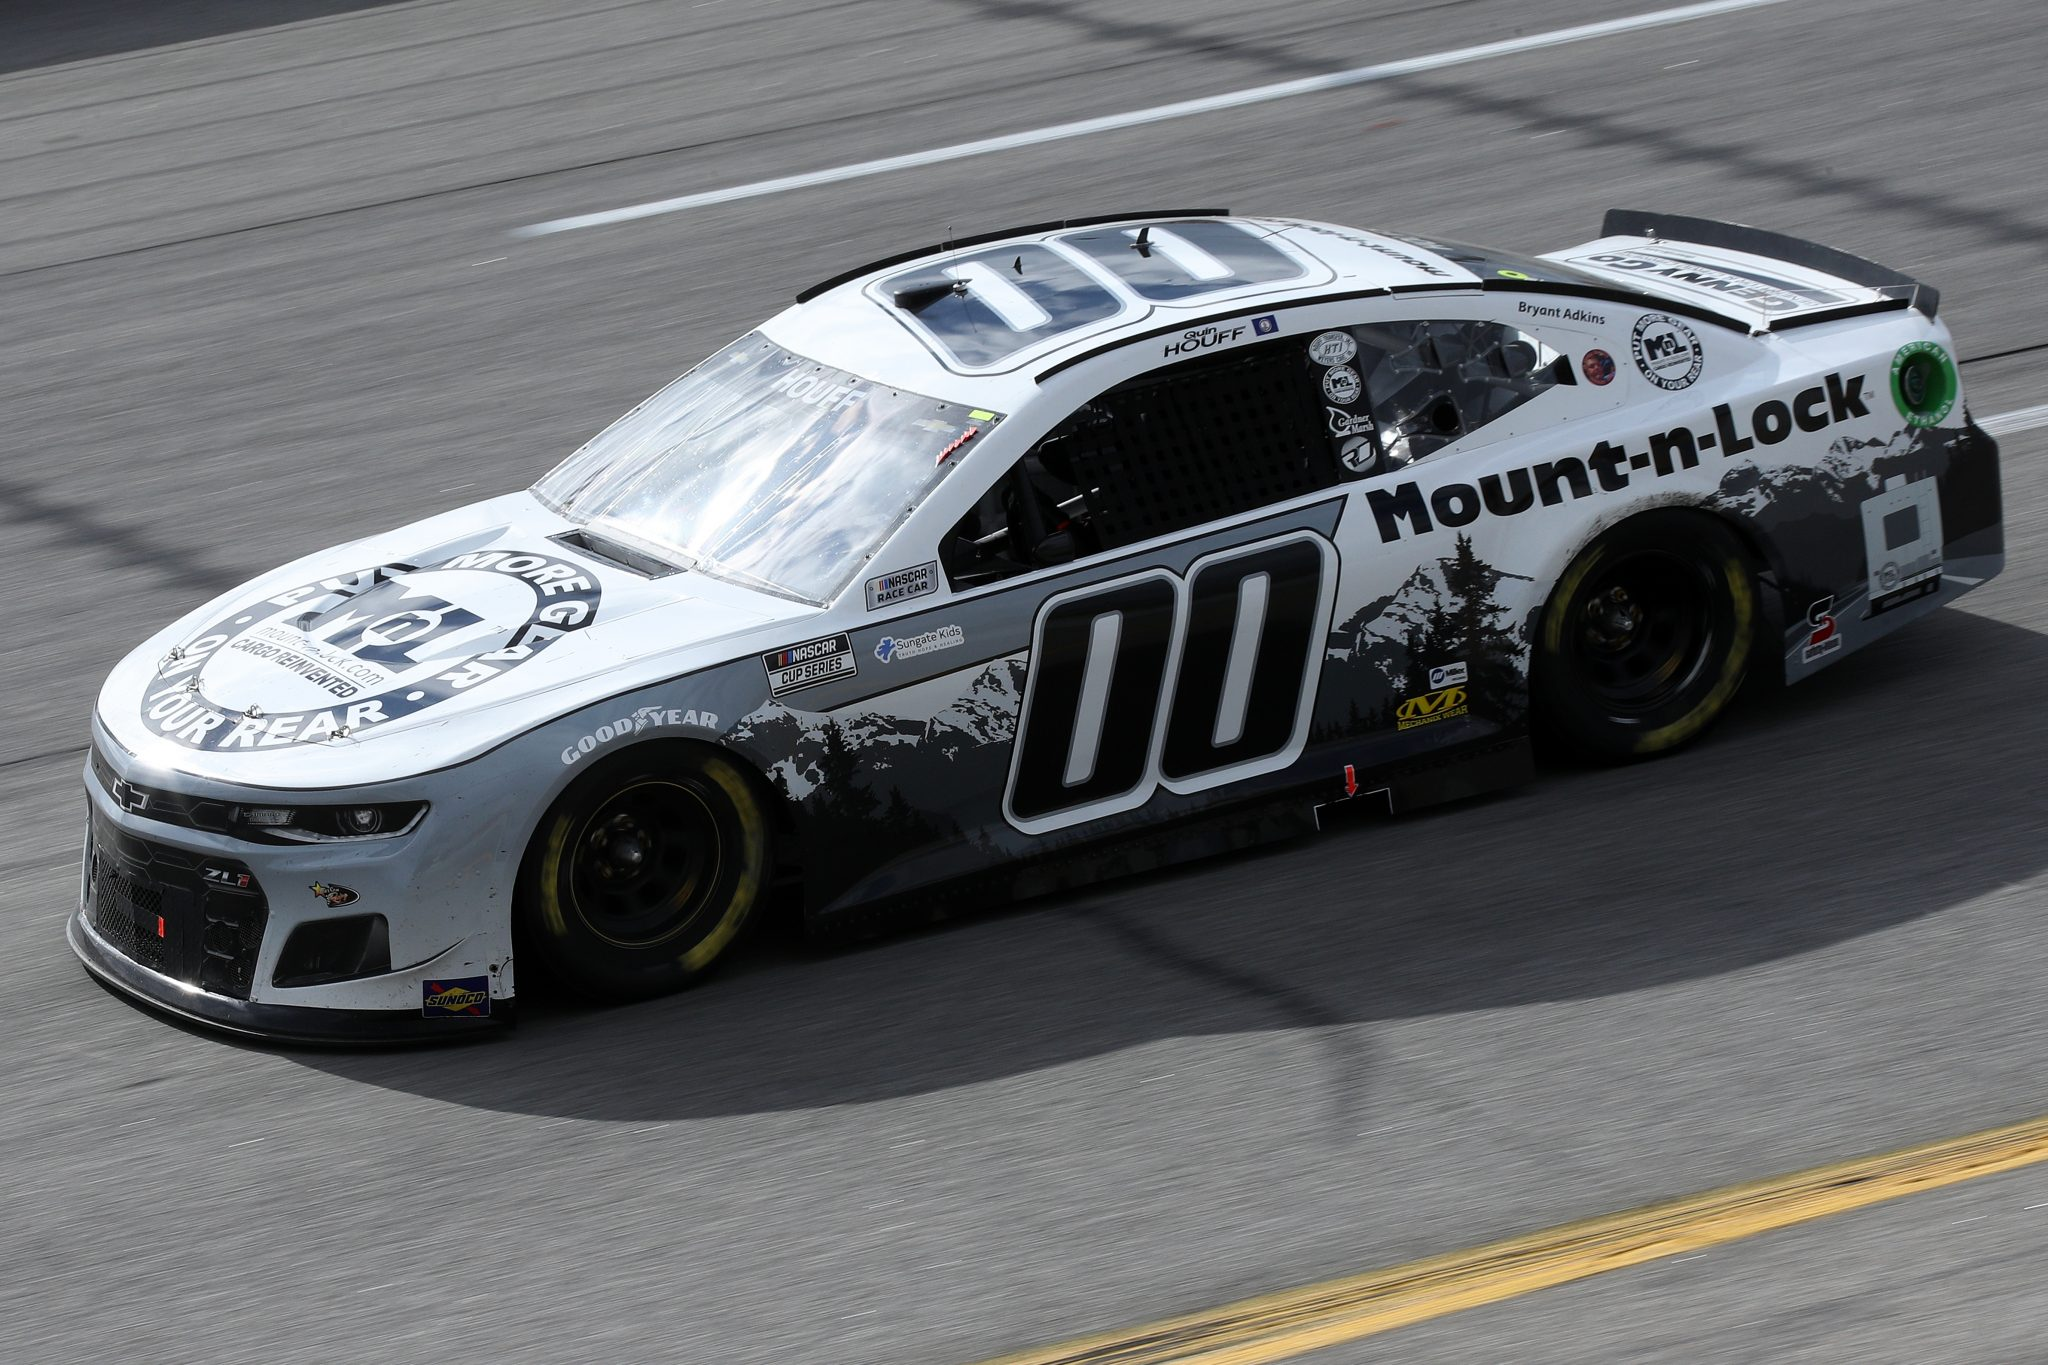 RICHMOND, VIRGINIA - APRIL 18: Quin Houff, driver of the #00 Mount-N-Lock Chevrolet, drives during the NASCAR Cup Series Toyota Owners 400 at Richmond Raceway on April 18, 2021 in Richmond, Virginia. (Photo by Sean Gardner/Getty Images) | Getty Images